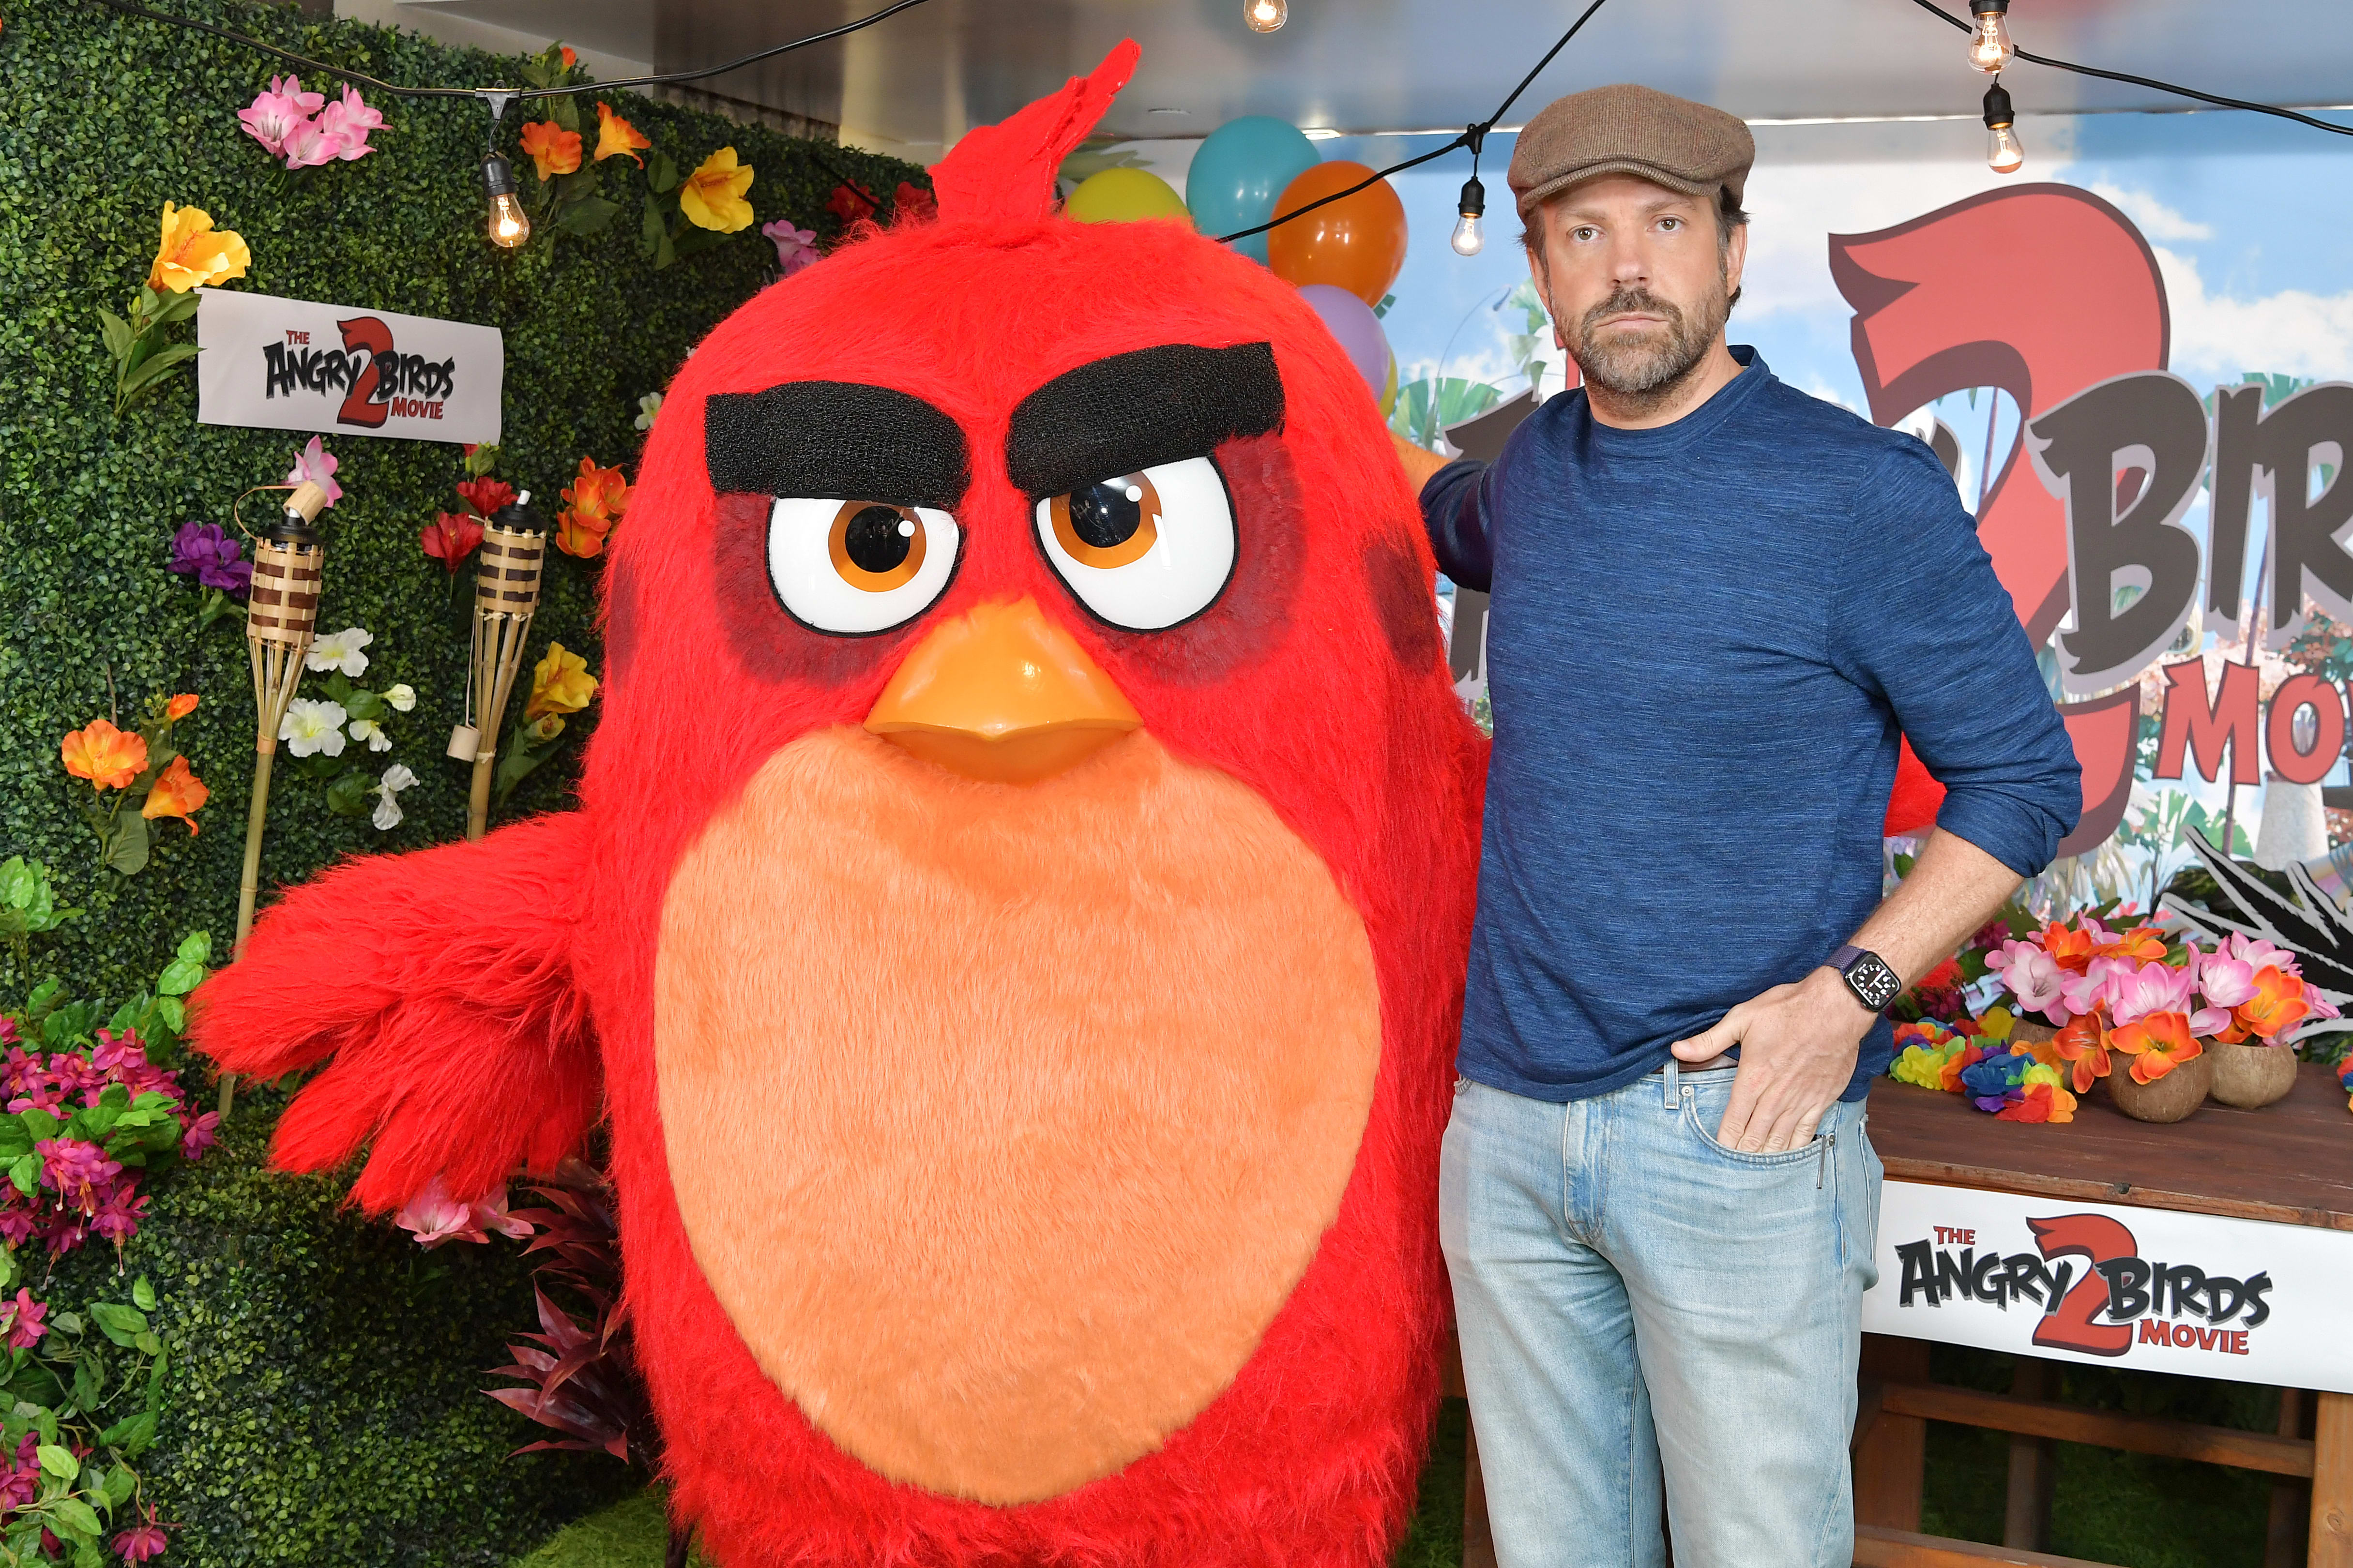 Jason Sudeikis at 'Angry Birds Movie' event